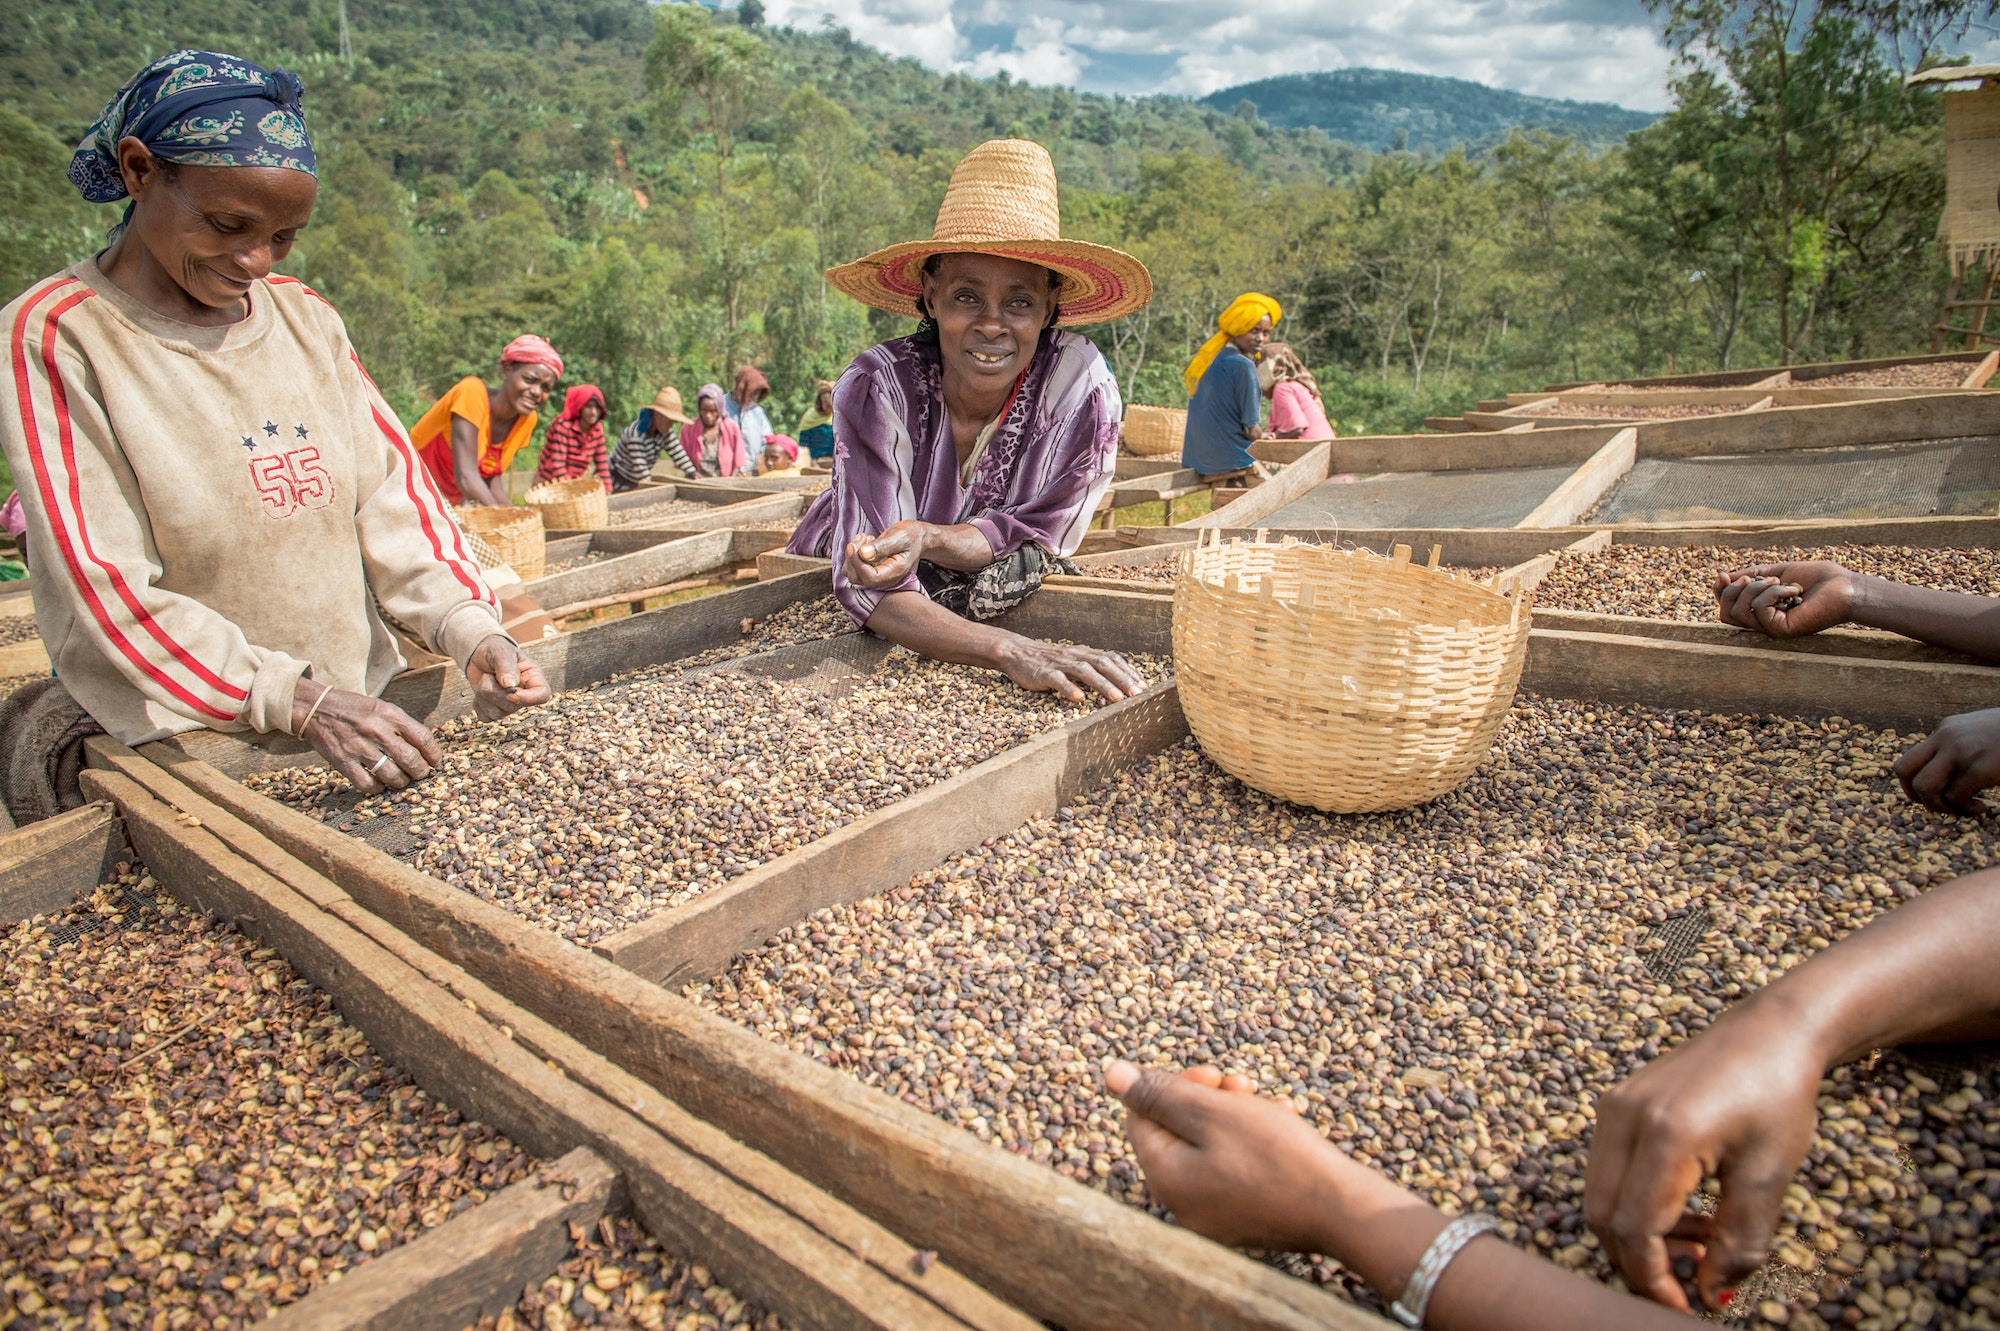 Ethiopia's Kaffa region is home to the largest pool of genetic diversity in the coffee world—more than the rest of the top coffee-producing countries combined.